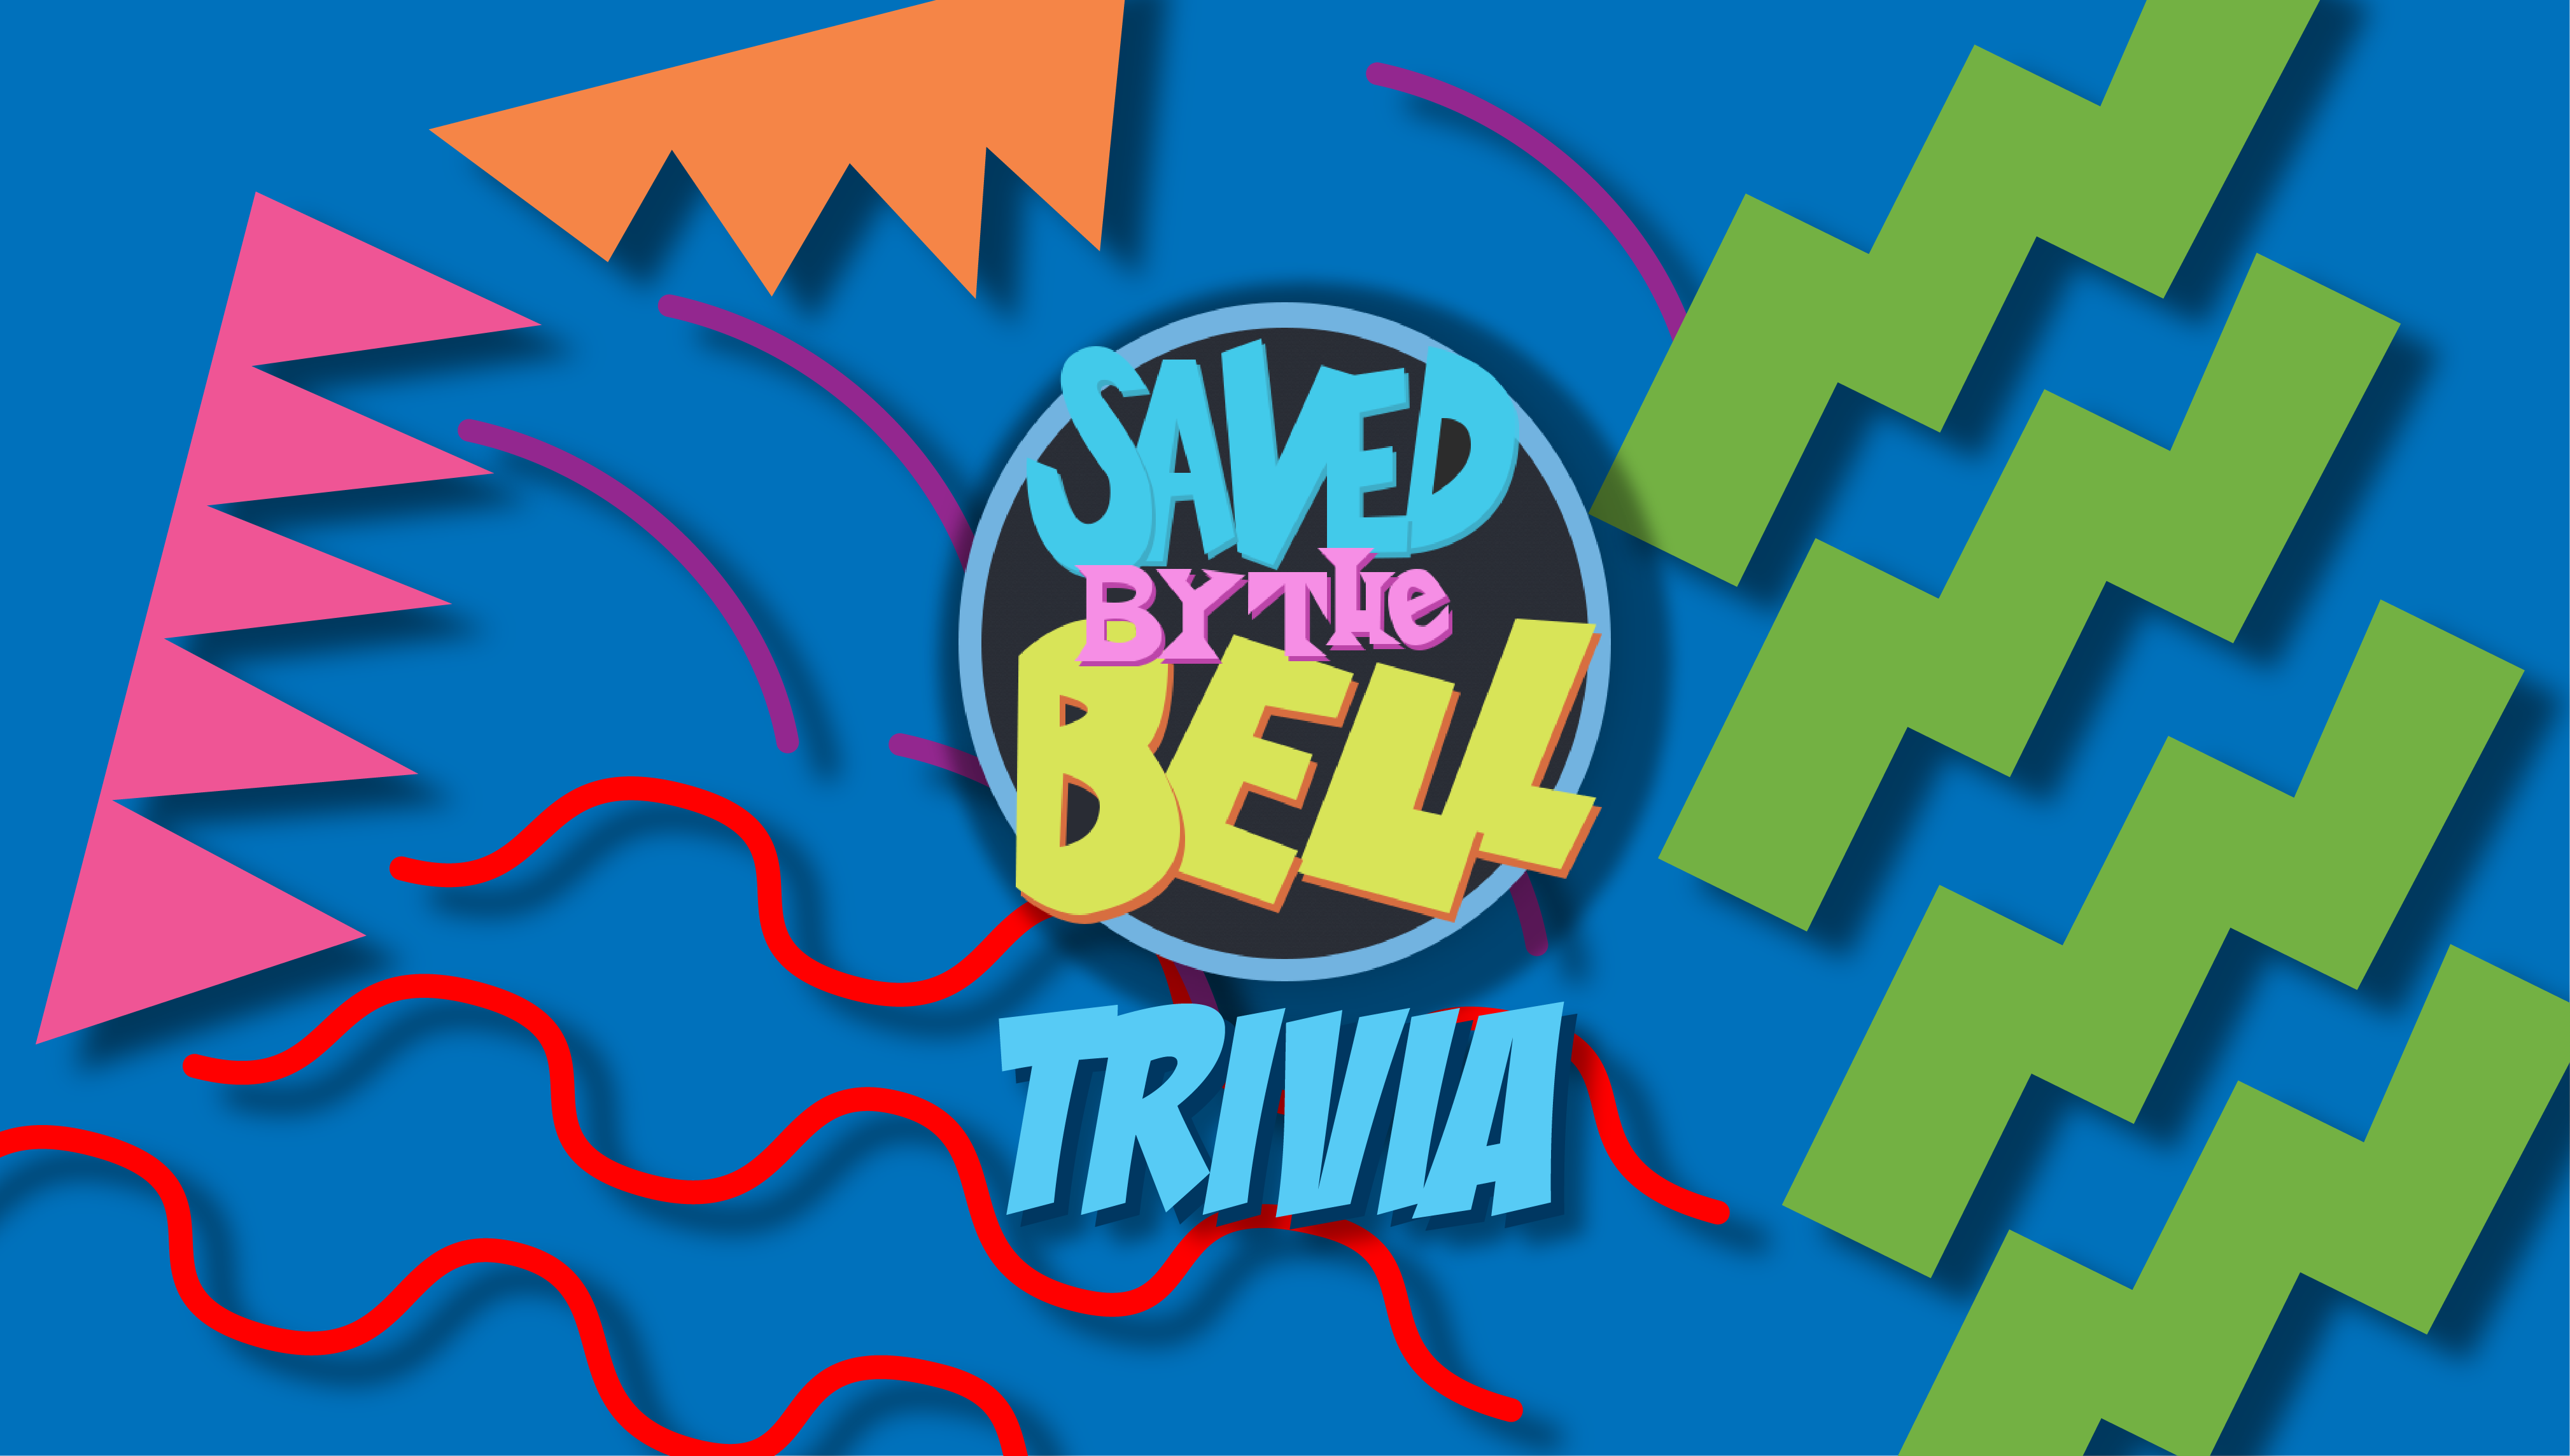 Saved by the bell clipart clip library Saved by the bell Logos clip library